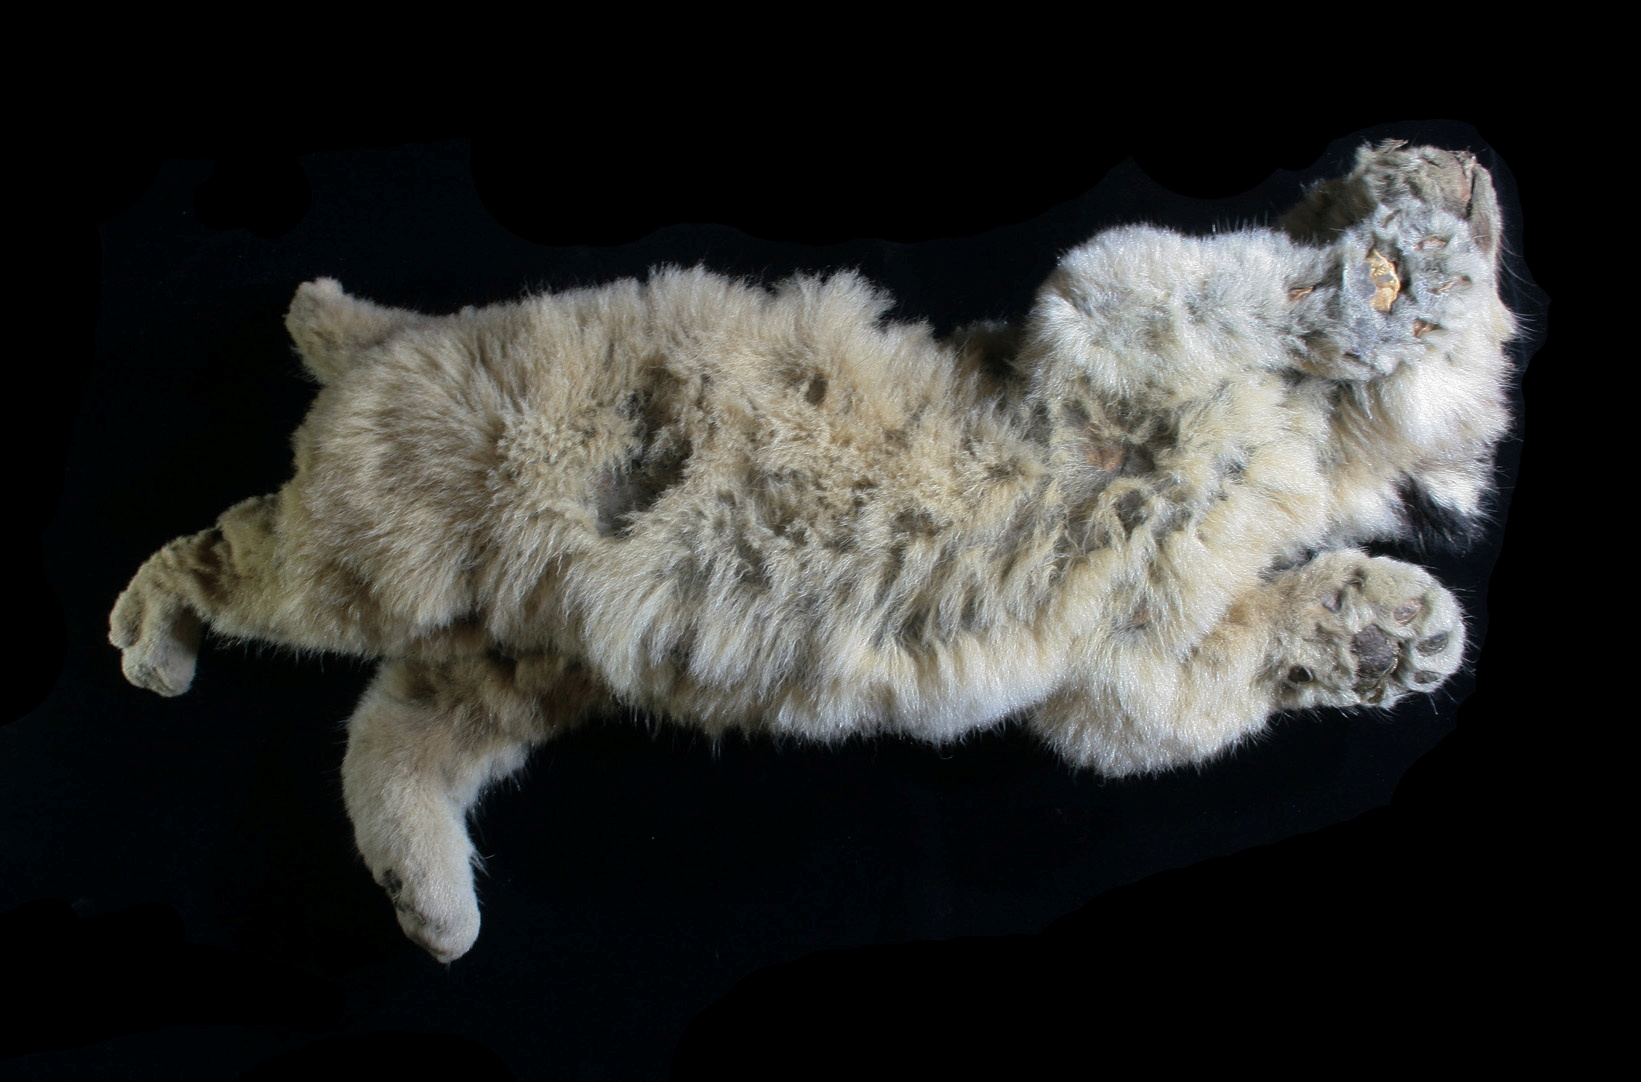 A cave lion cub named Boris, which was found preserved in Siberia's permafrost, is seen in this undated photo taken in 2020, in Yakutsk, Russia.  REUTERS/Innokenty Pavlov